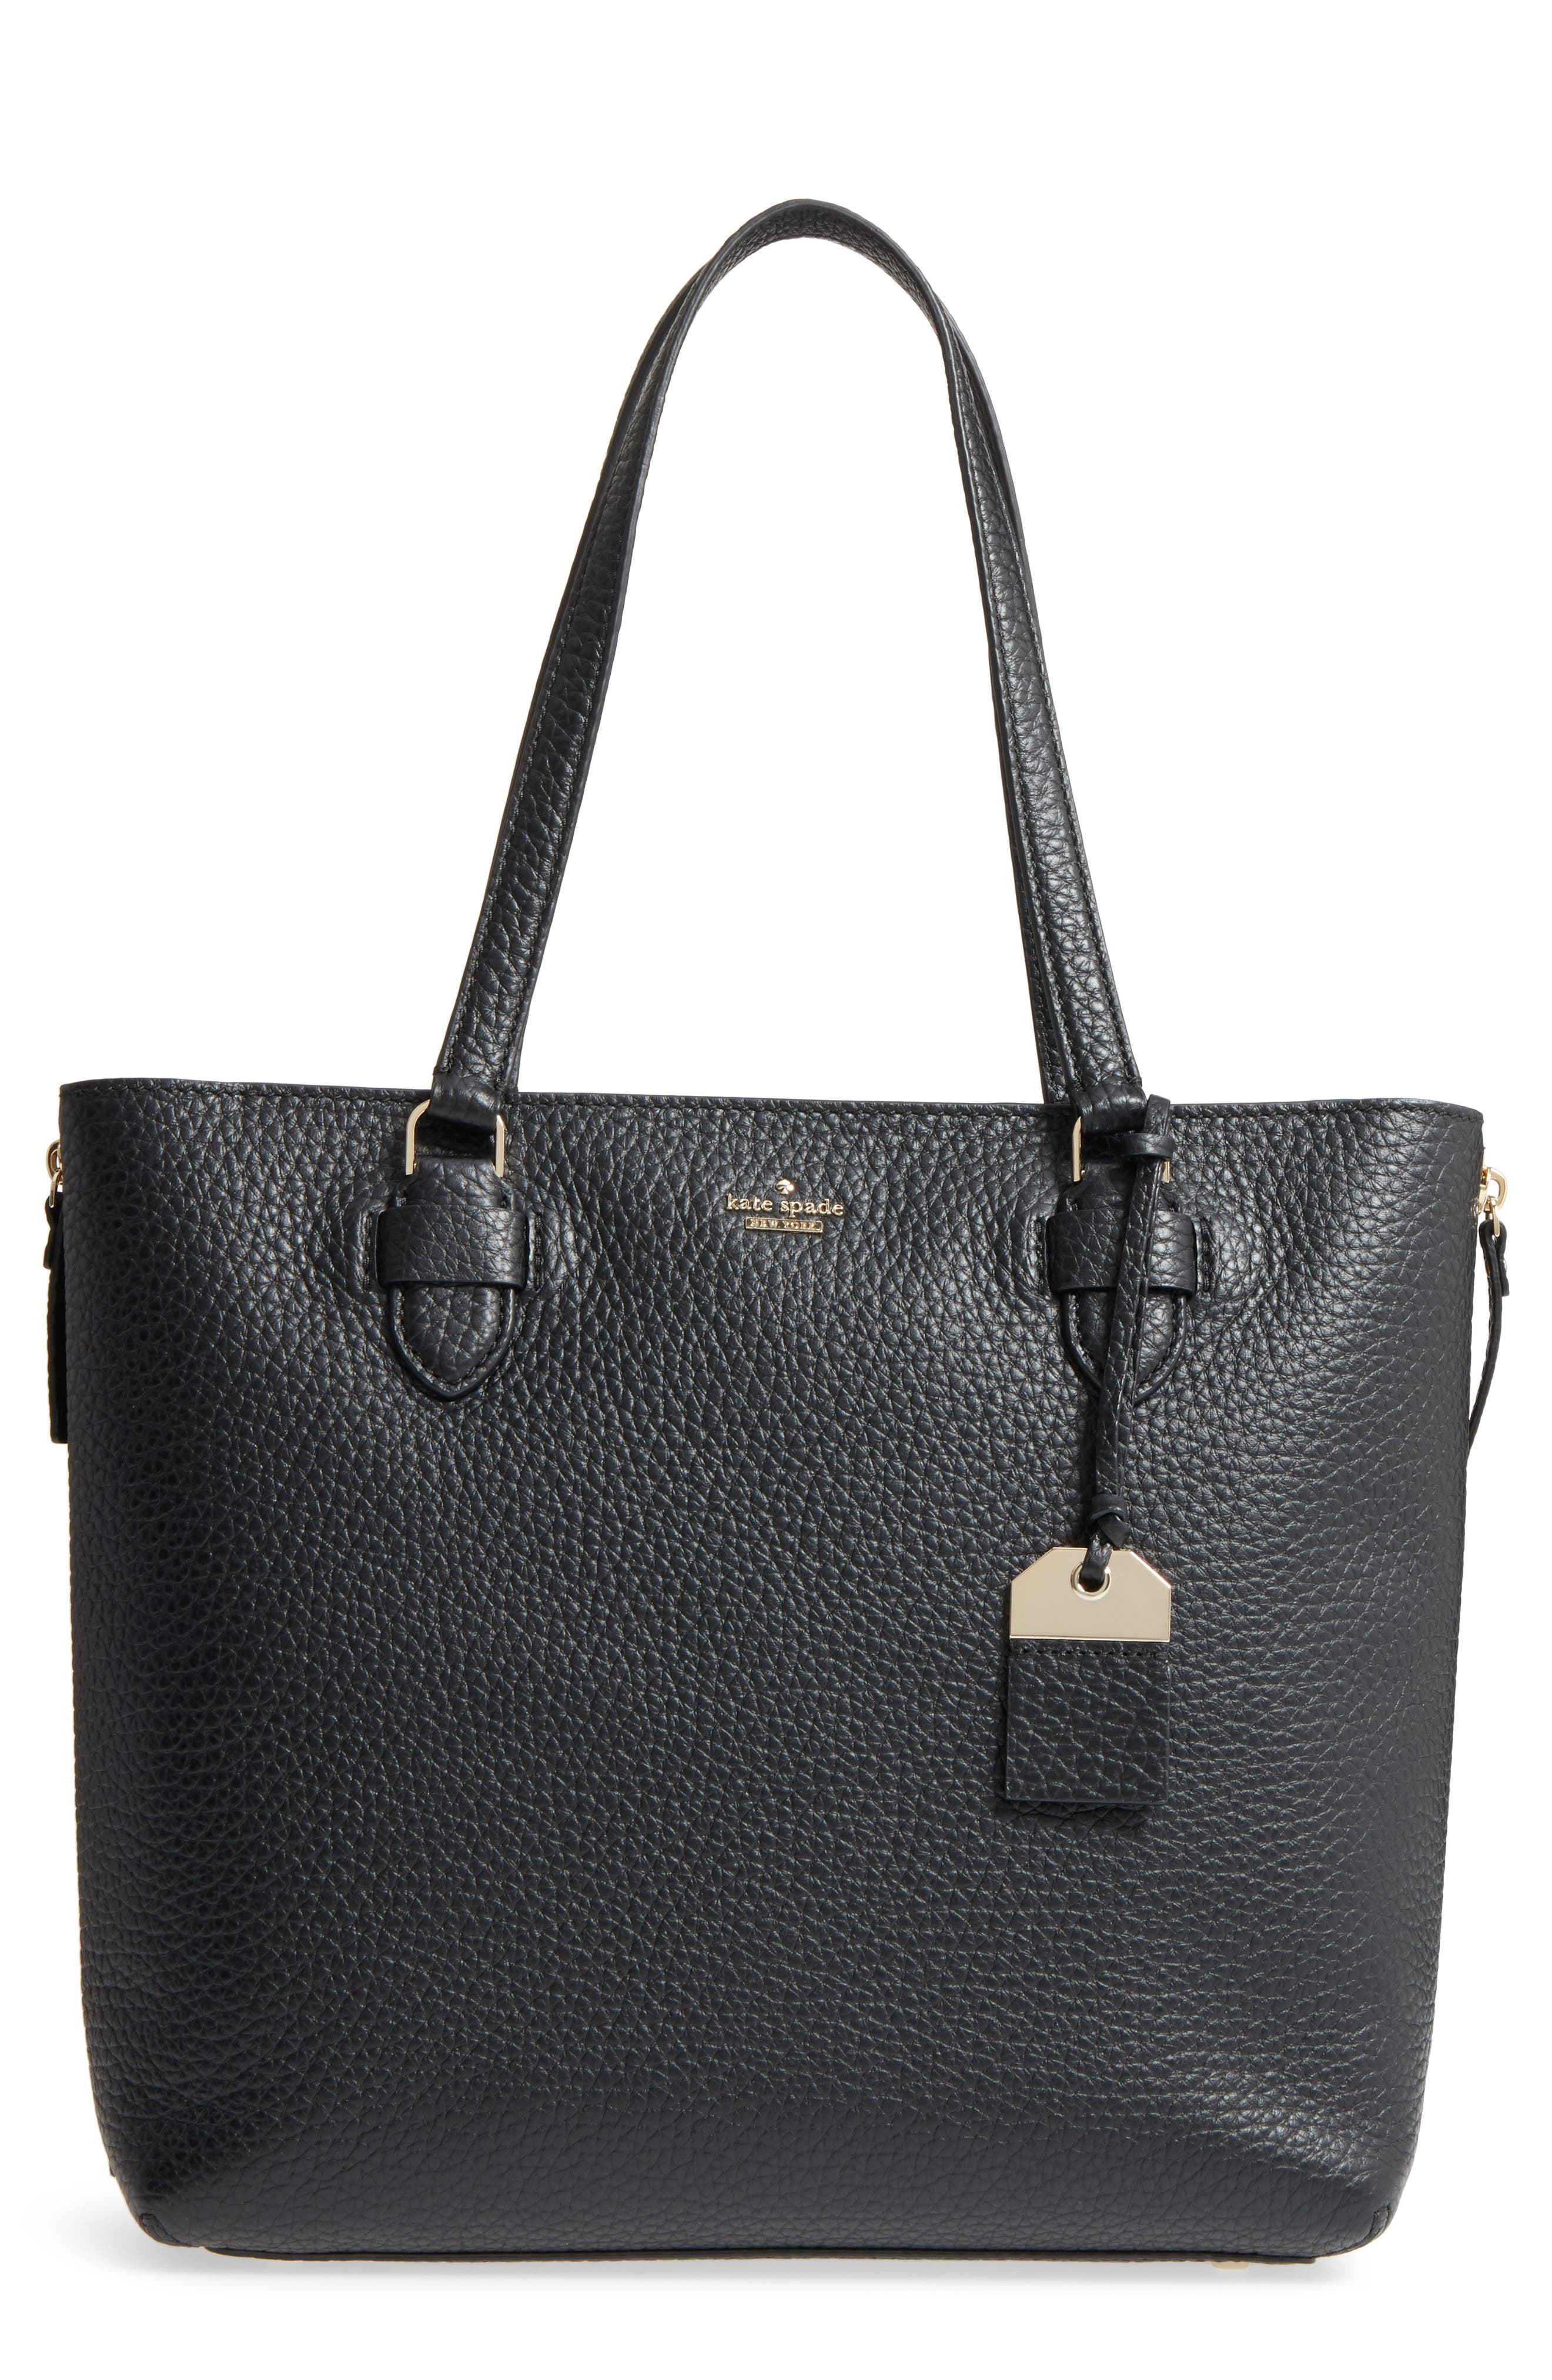 carter street - selena leather tote,                             Main thumbnail 1, color,